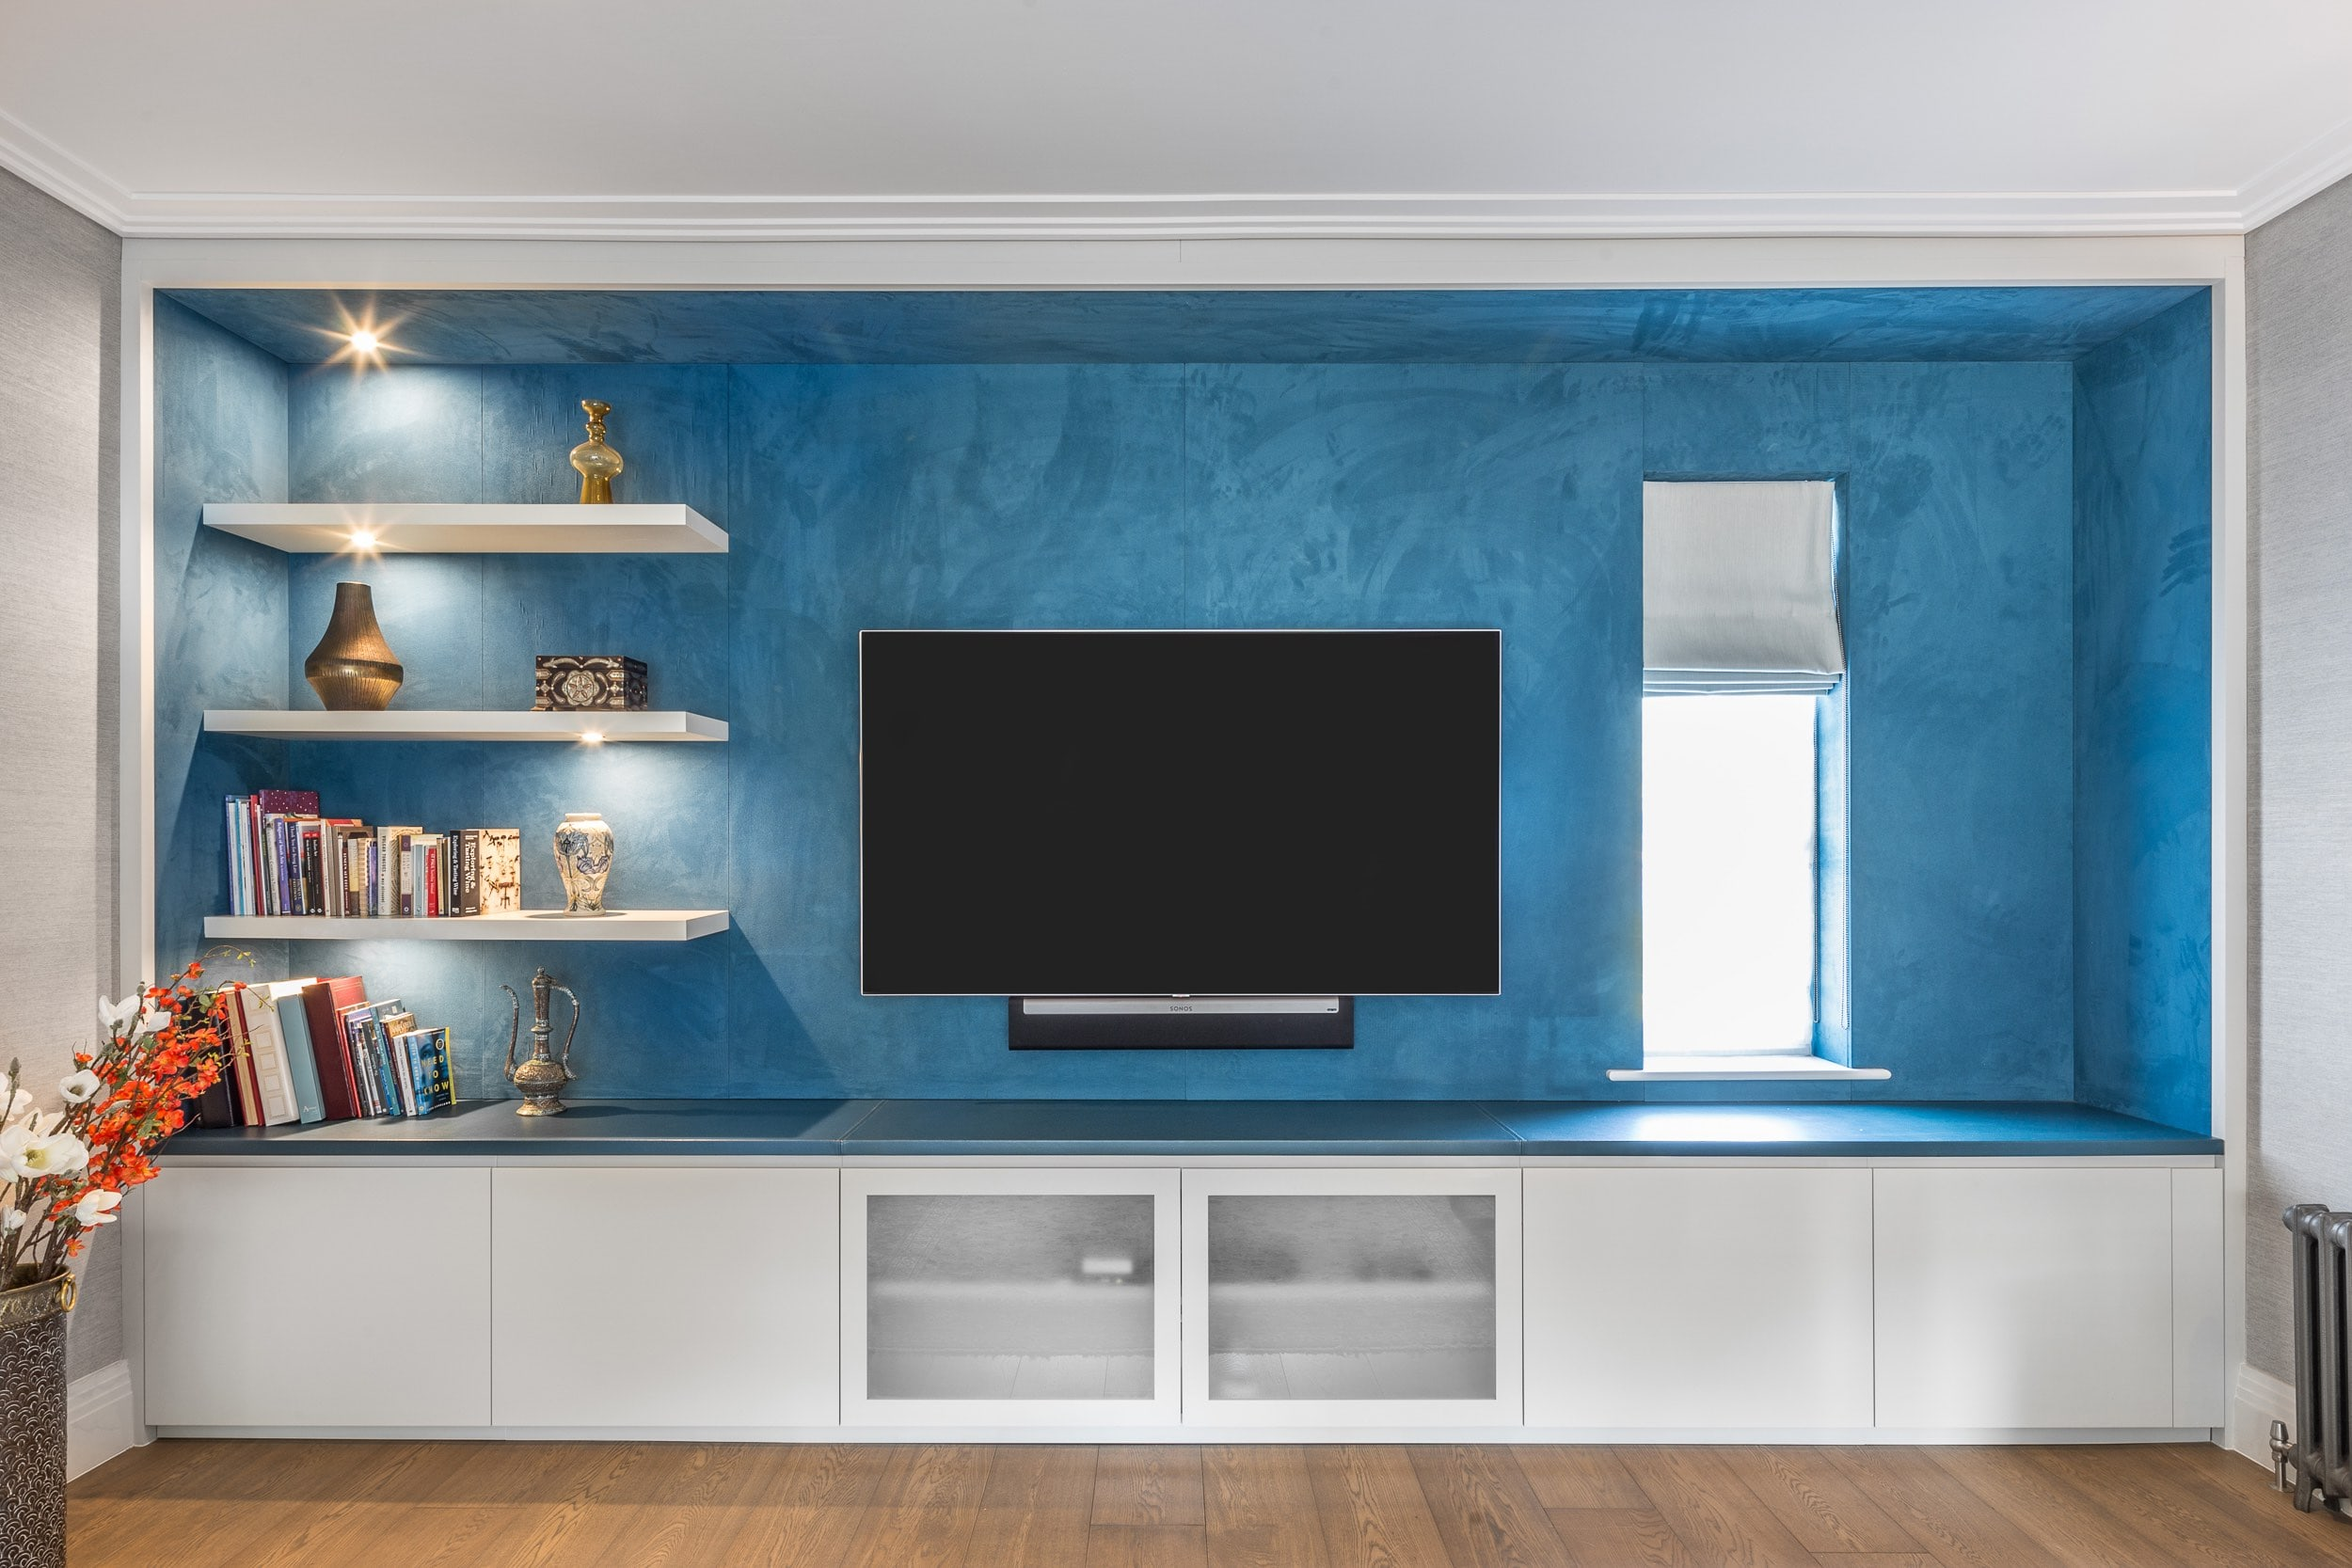 Blue and white recessed media wall with display shelving and storage cabinets